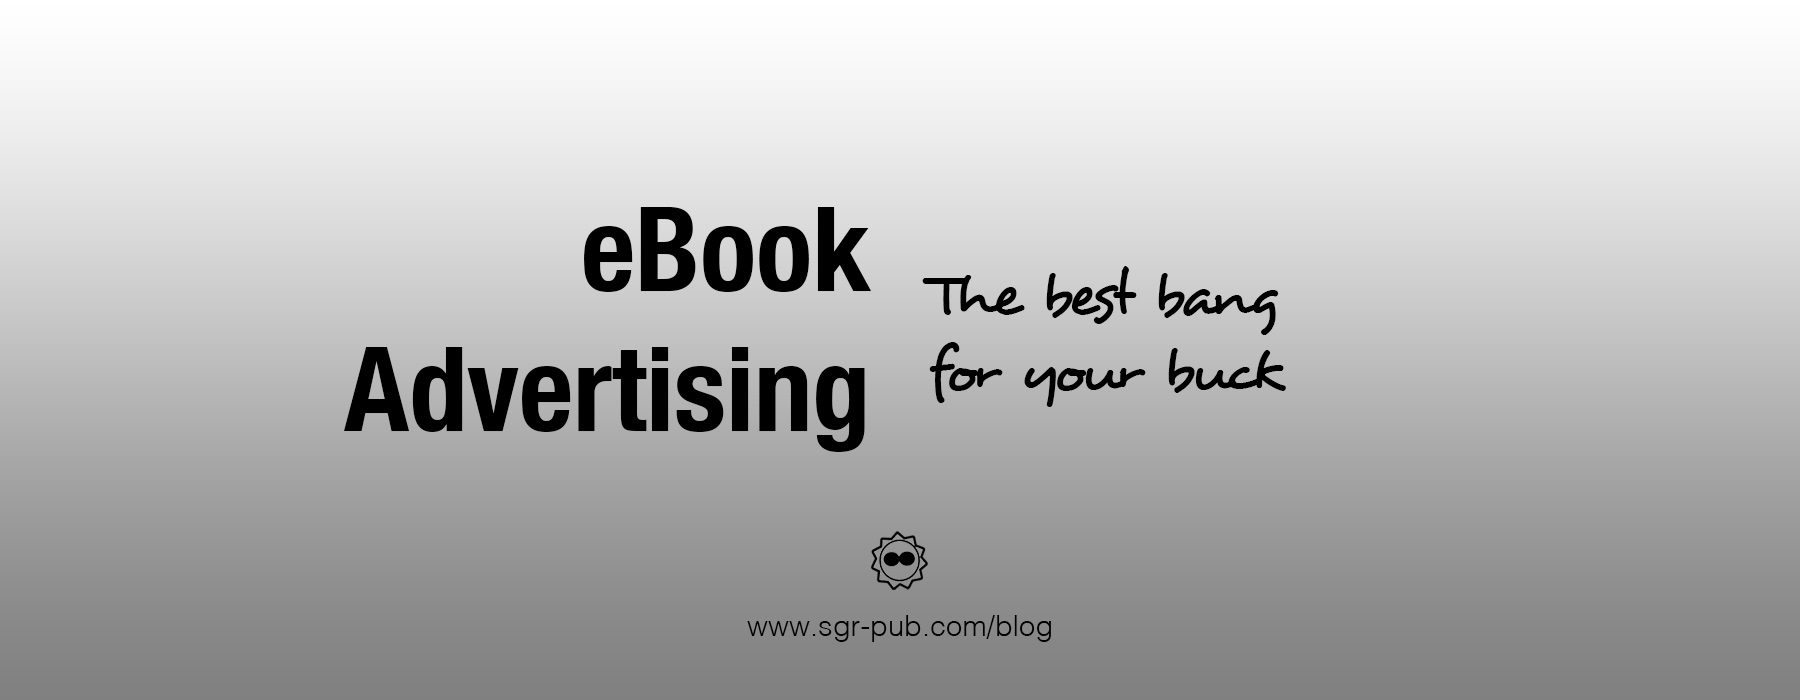 eBook Advertising - The best bang for your buck